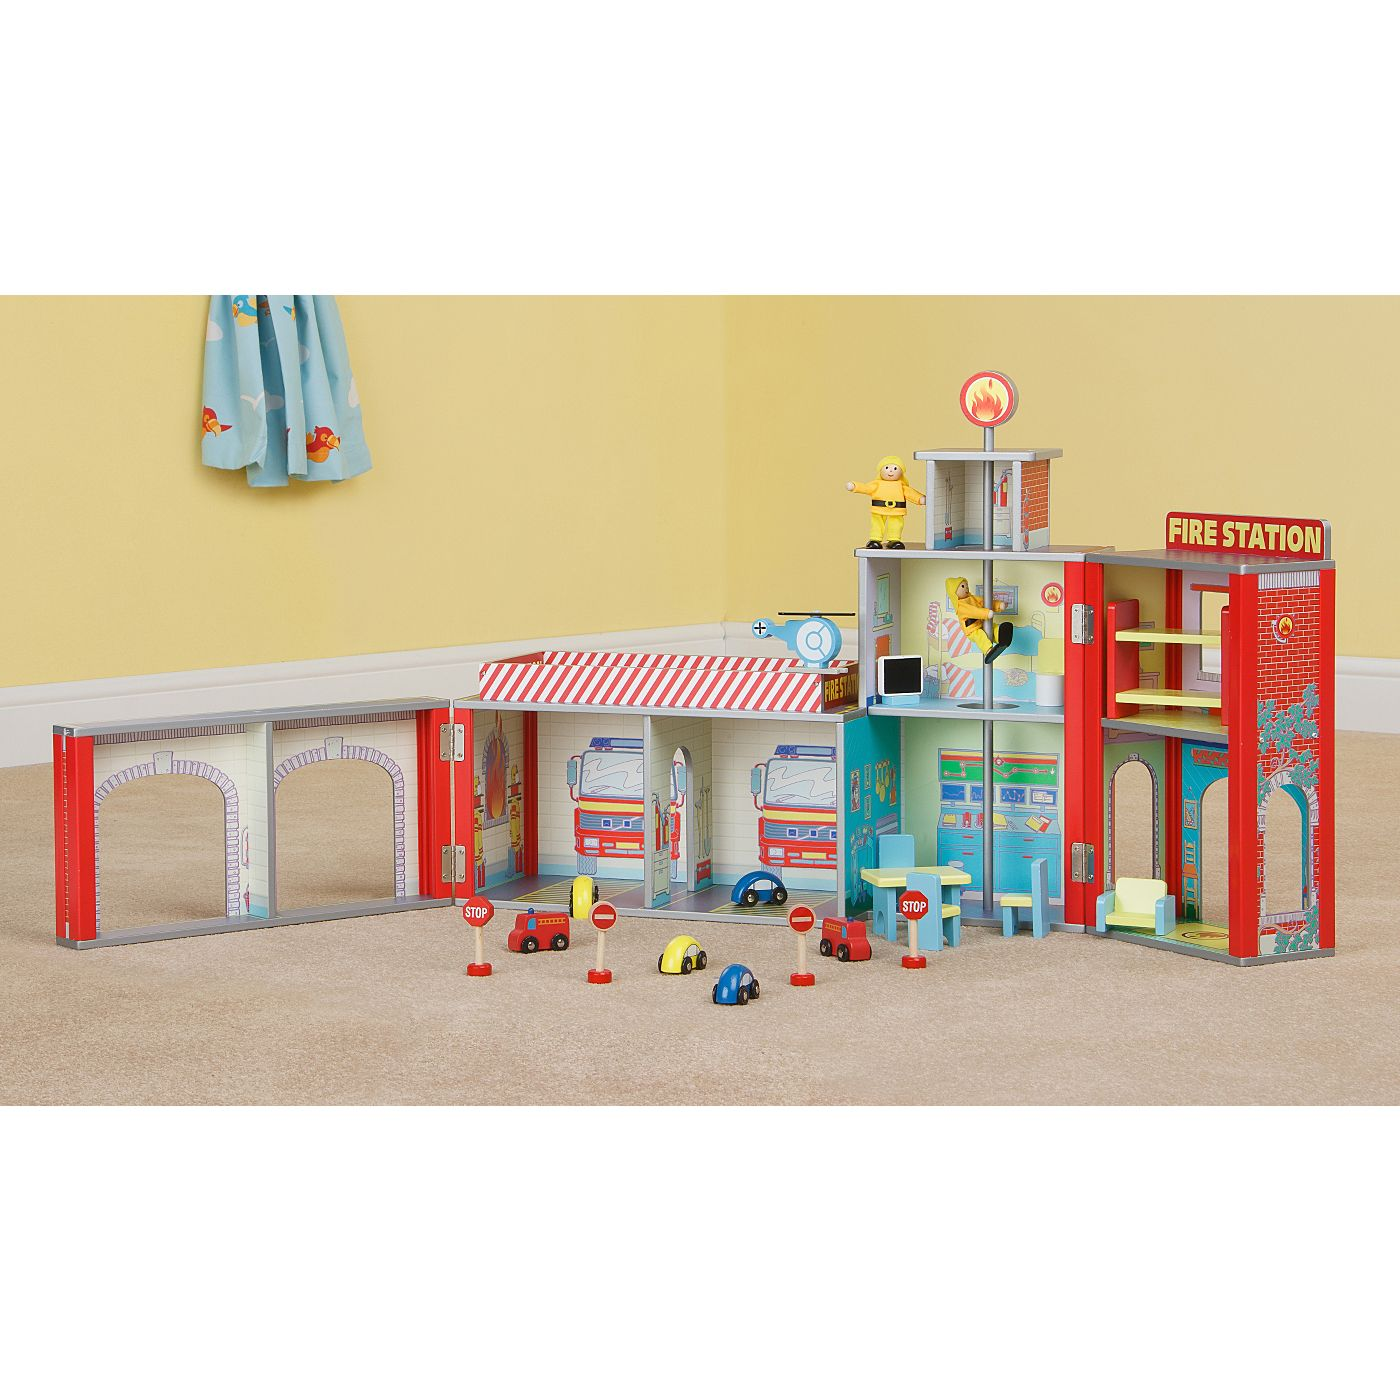 Plum Ingham Fire Station Wooden Play Set - Action -